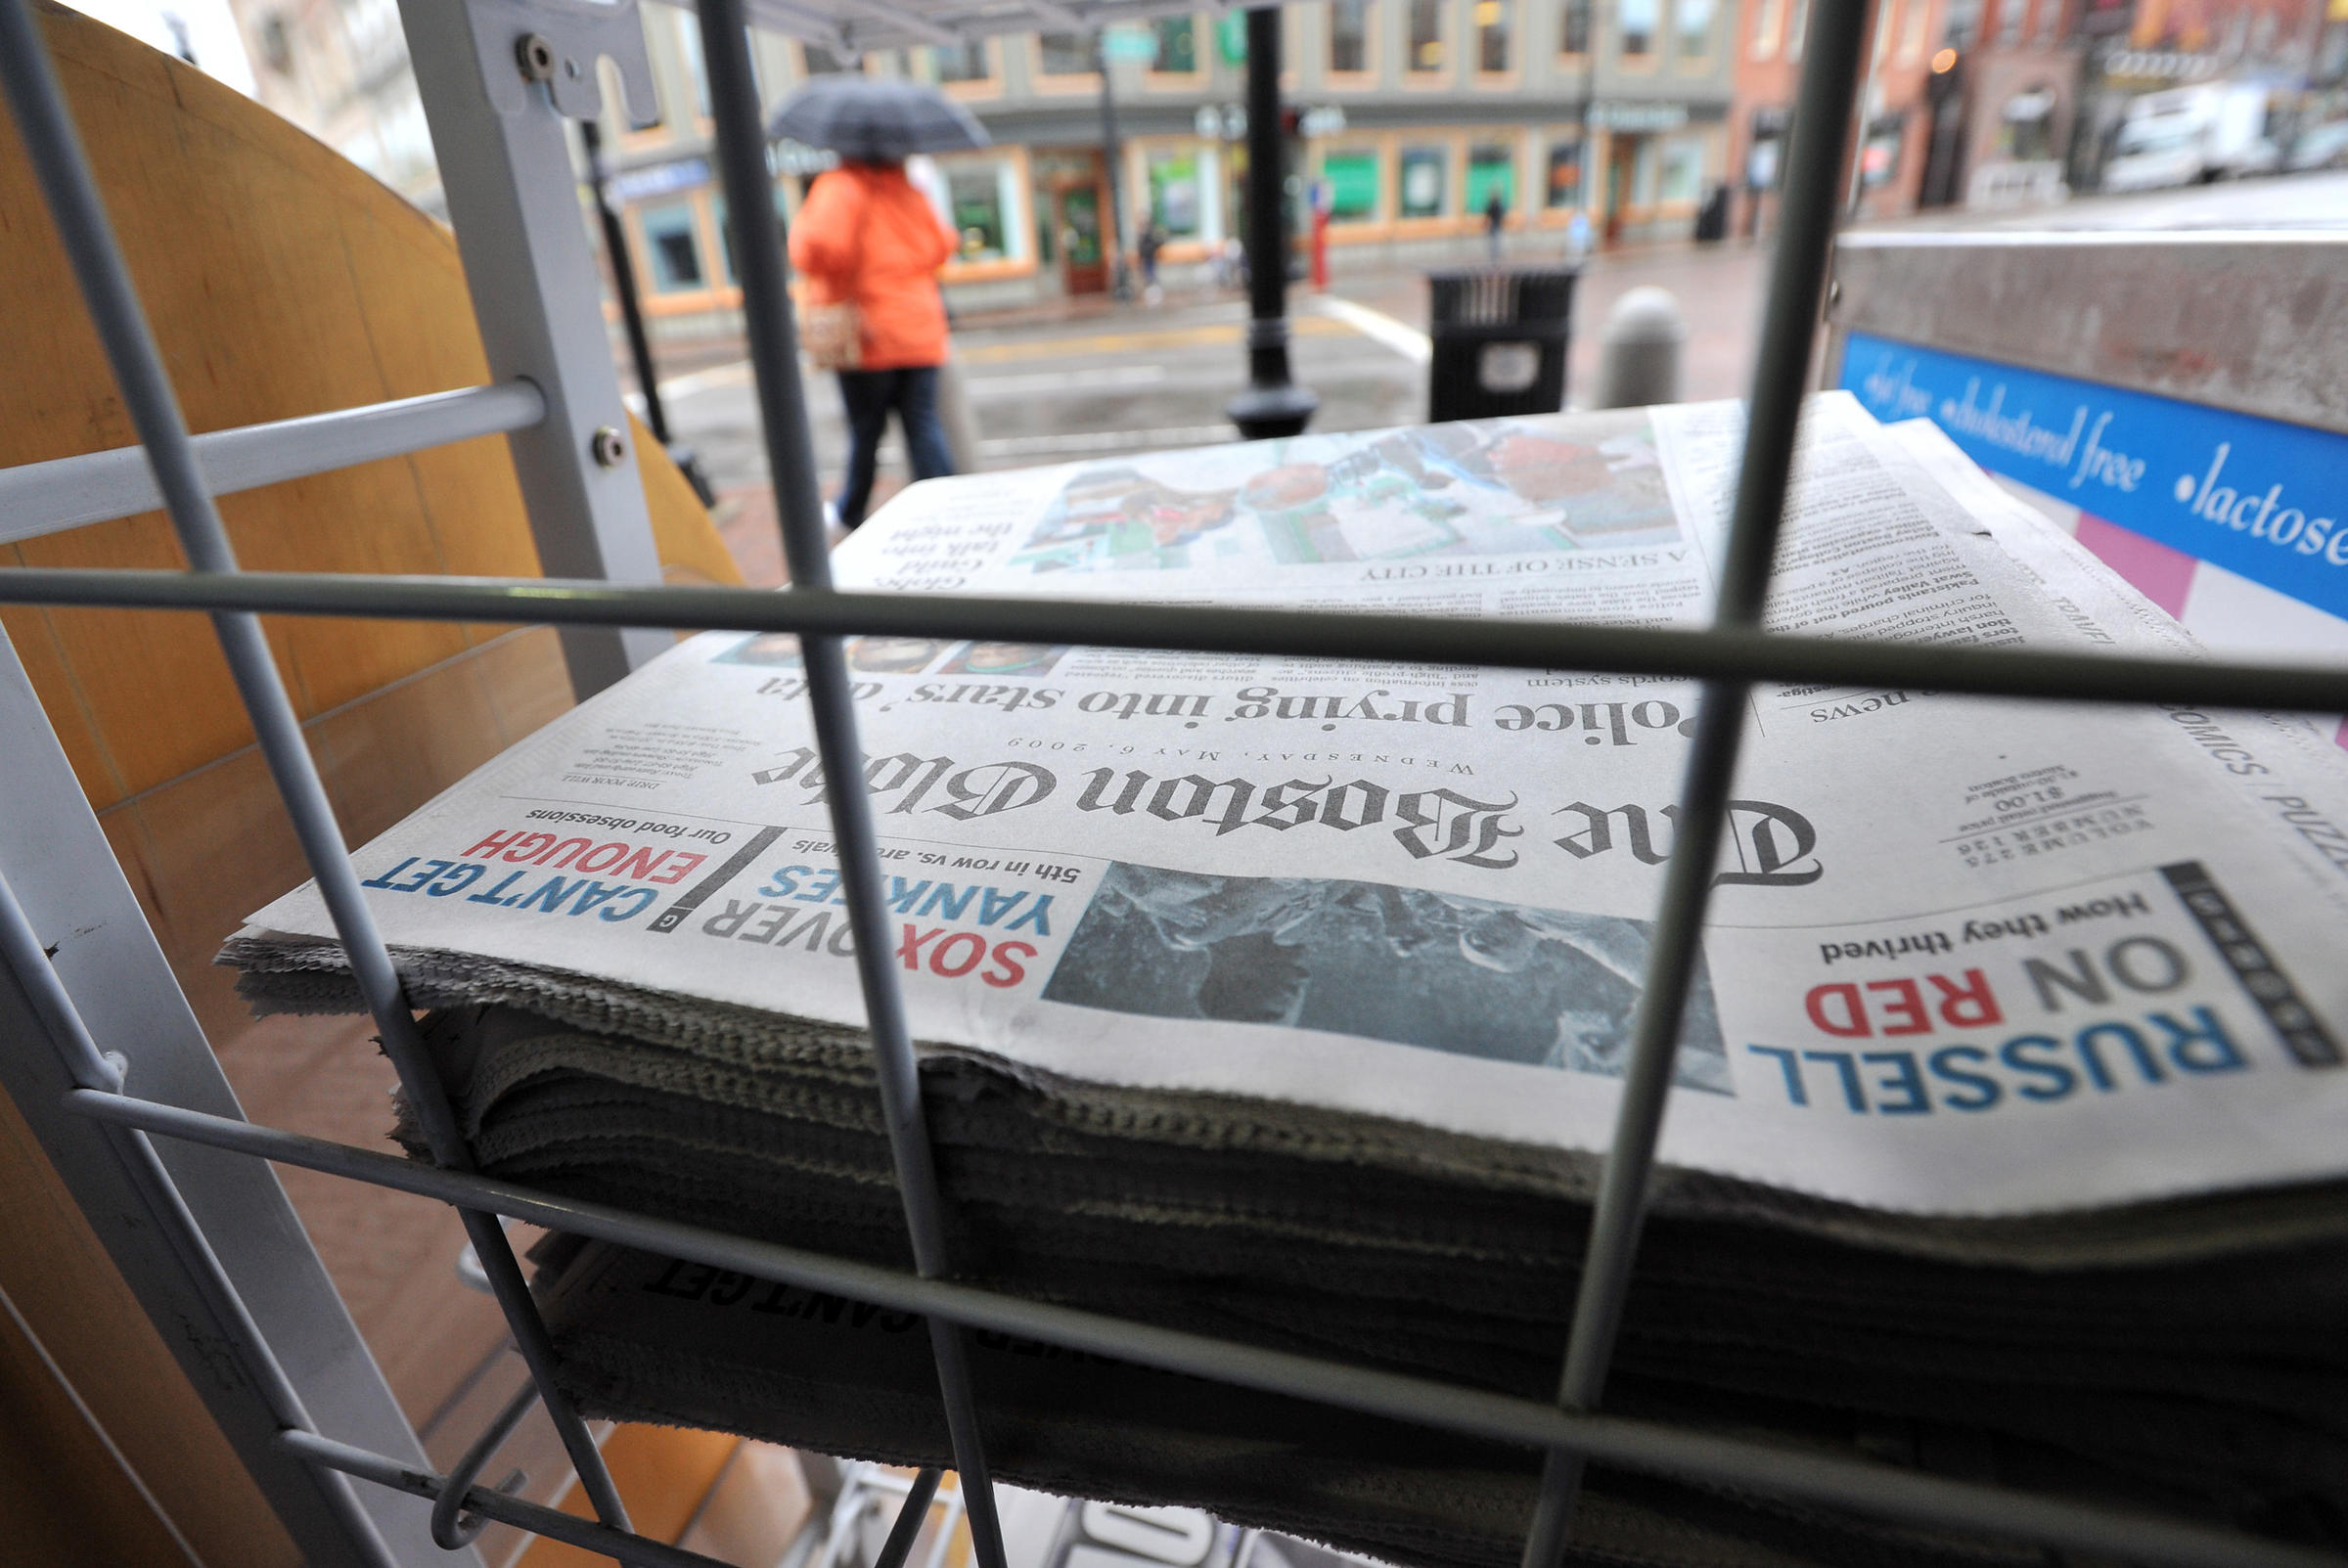 harvard chair for sale chairs folding target poynter journalism ethics allderdice grad duty copies of the boston globe on at a news stand in square cambridge mass wednesday may 6 2009